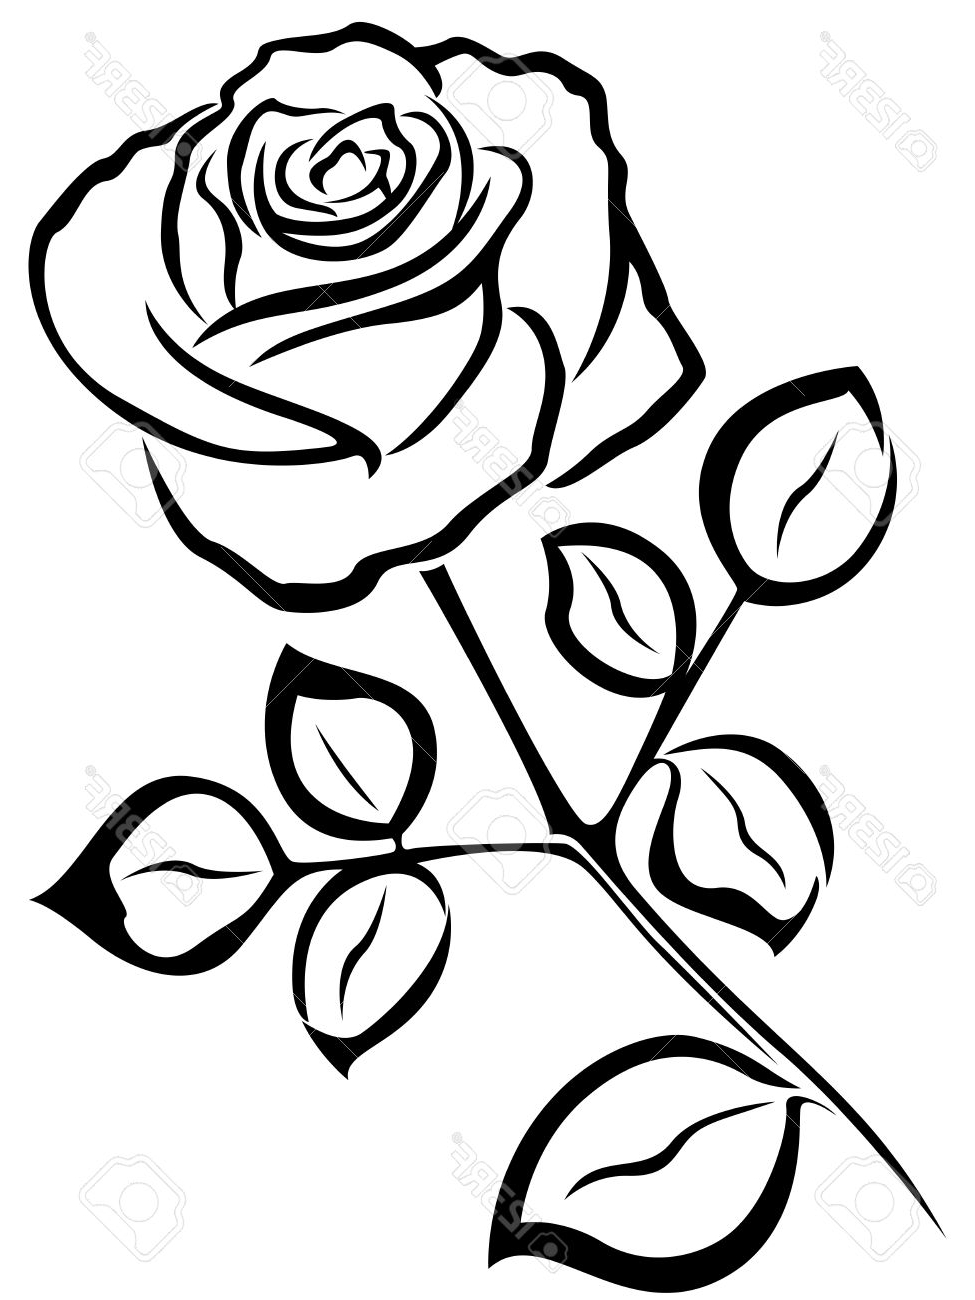 975x1300 Rose Flower Black And White Drawing Black Vector Outline Of Single